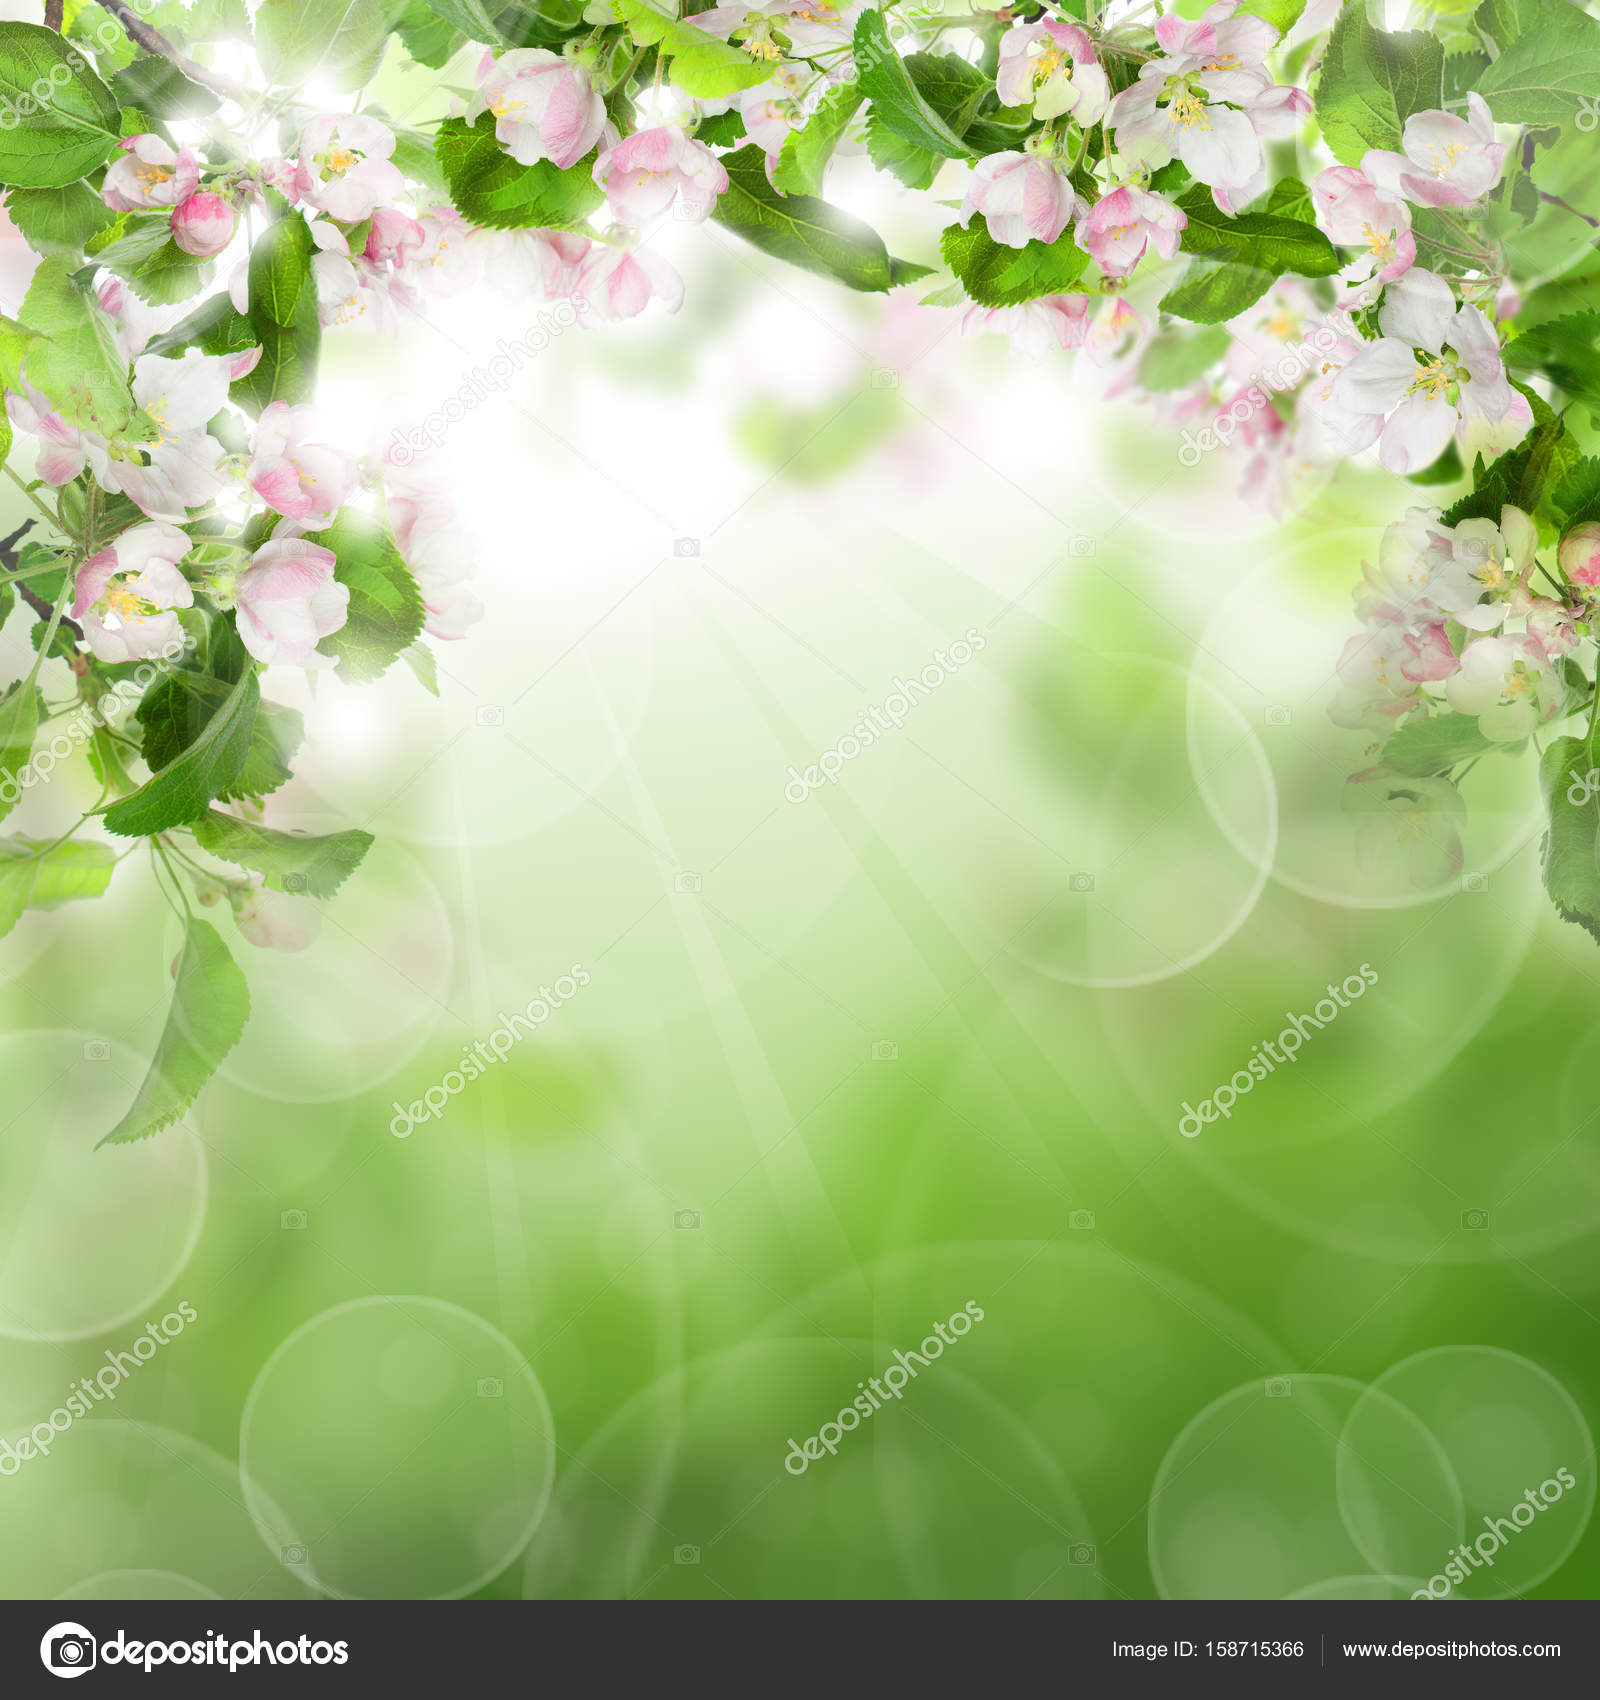 Abstract green background with white flowers green leaves and s abstract green background with white flowers green leaves and s stock photo mightylinksfo